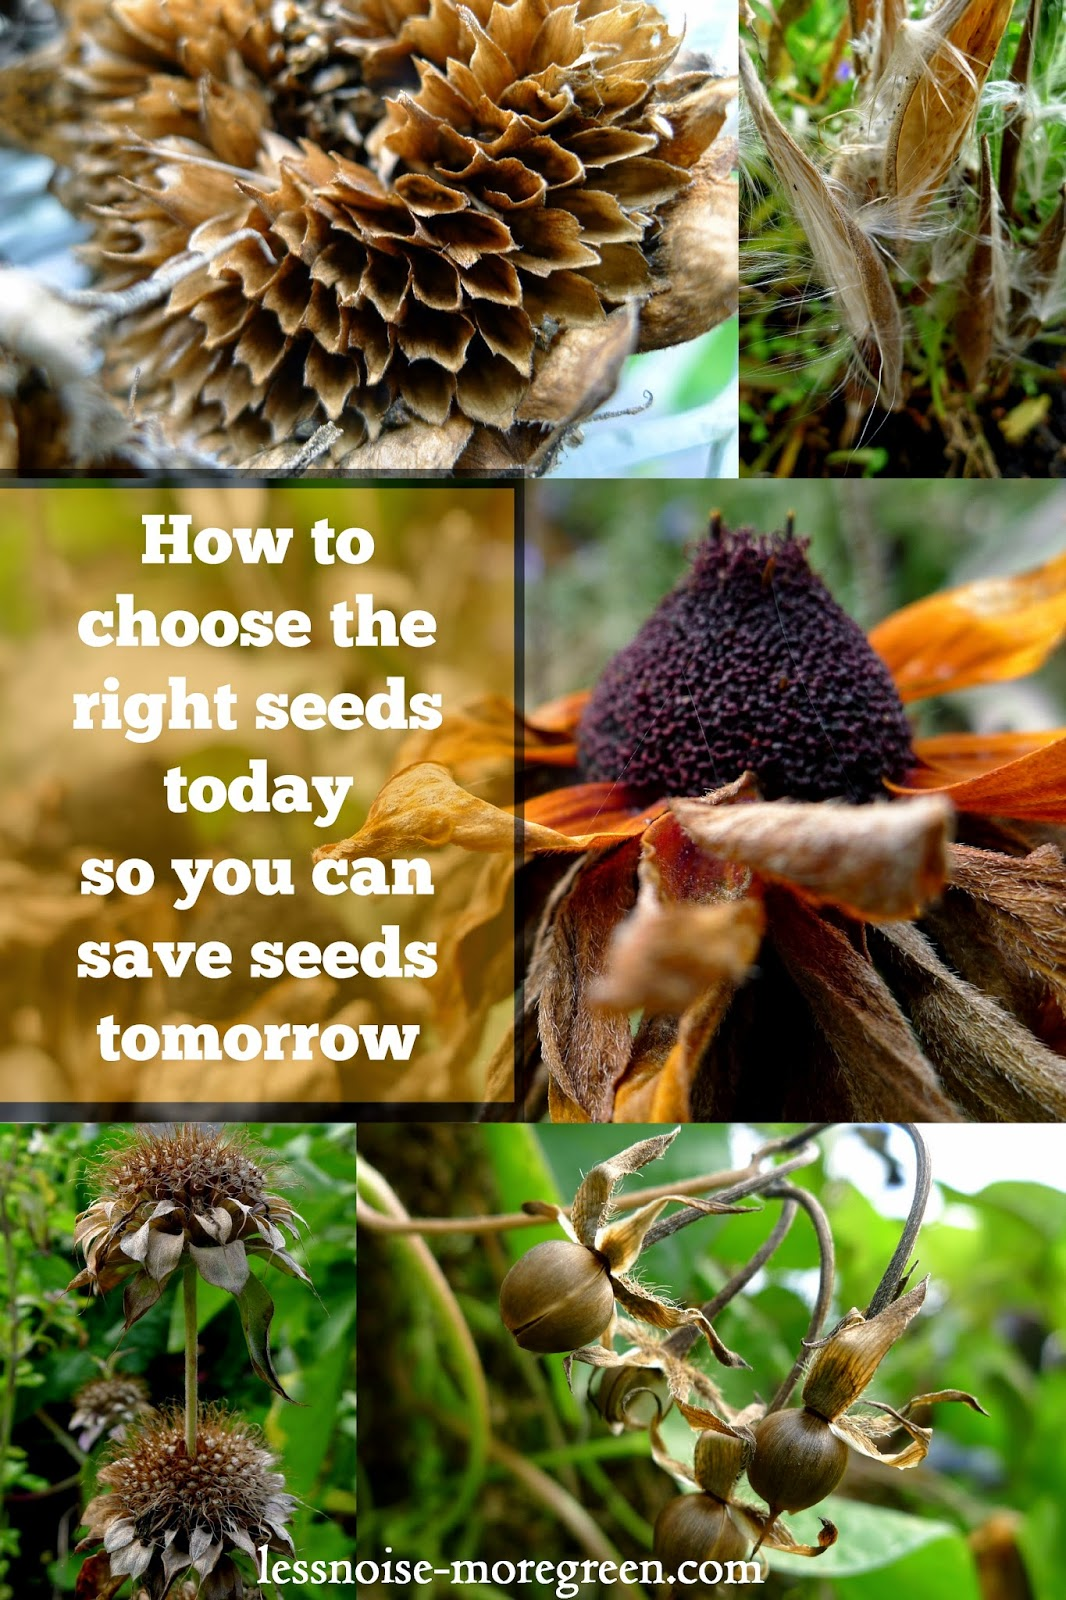 How to choose the right seeds today so you can save seeds tomorrow, open pollinated seeds